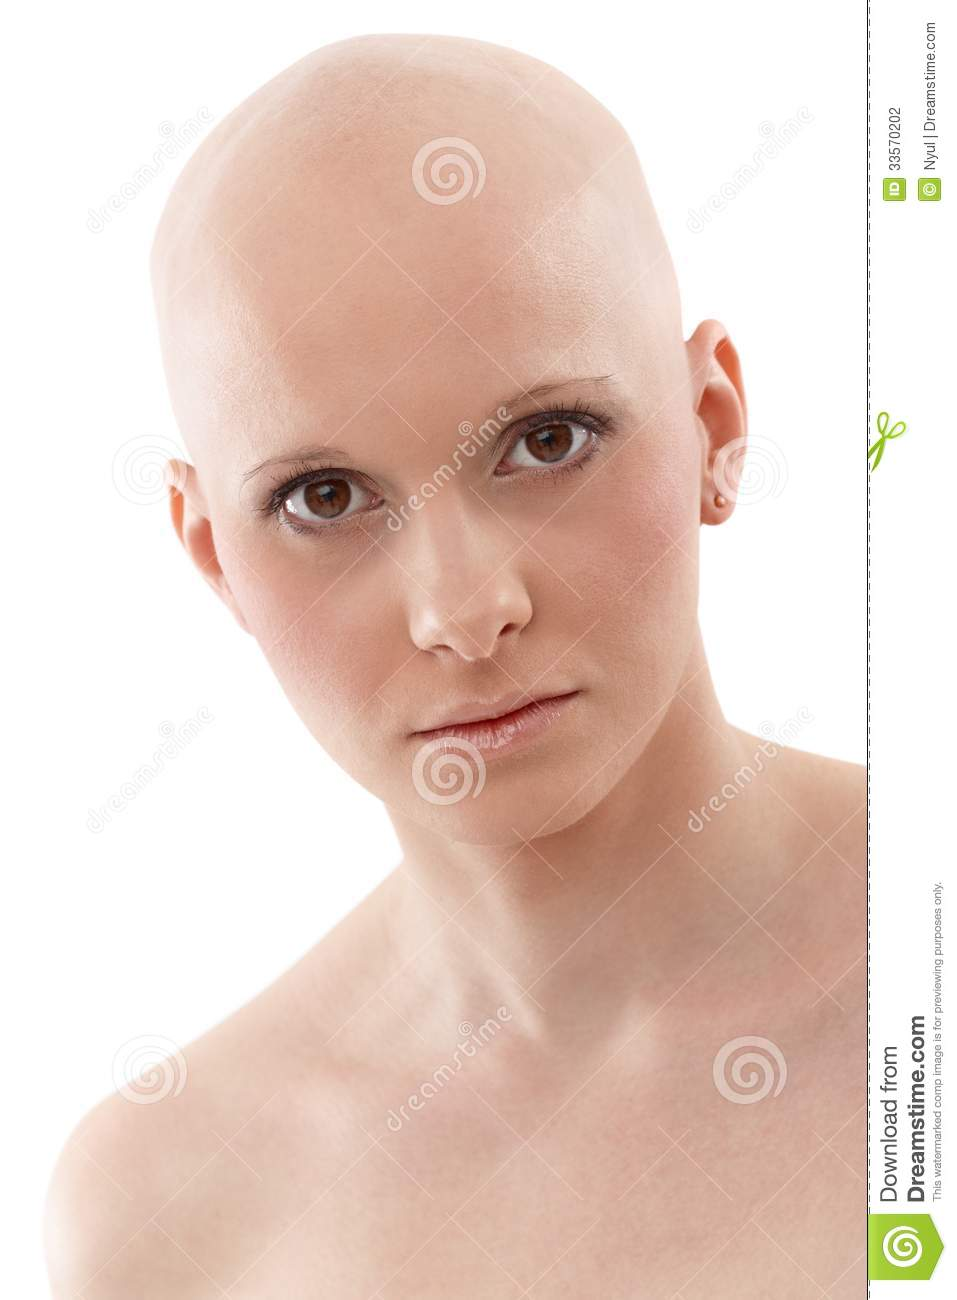 Cancer head shaved